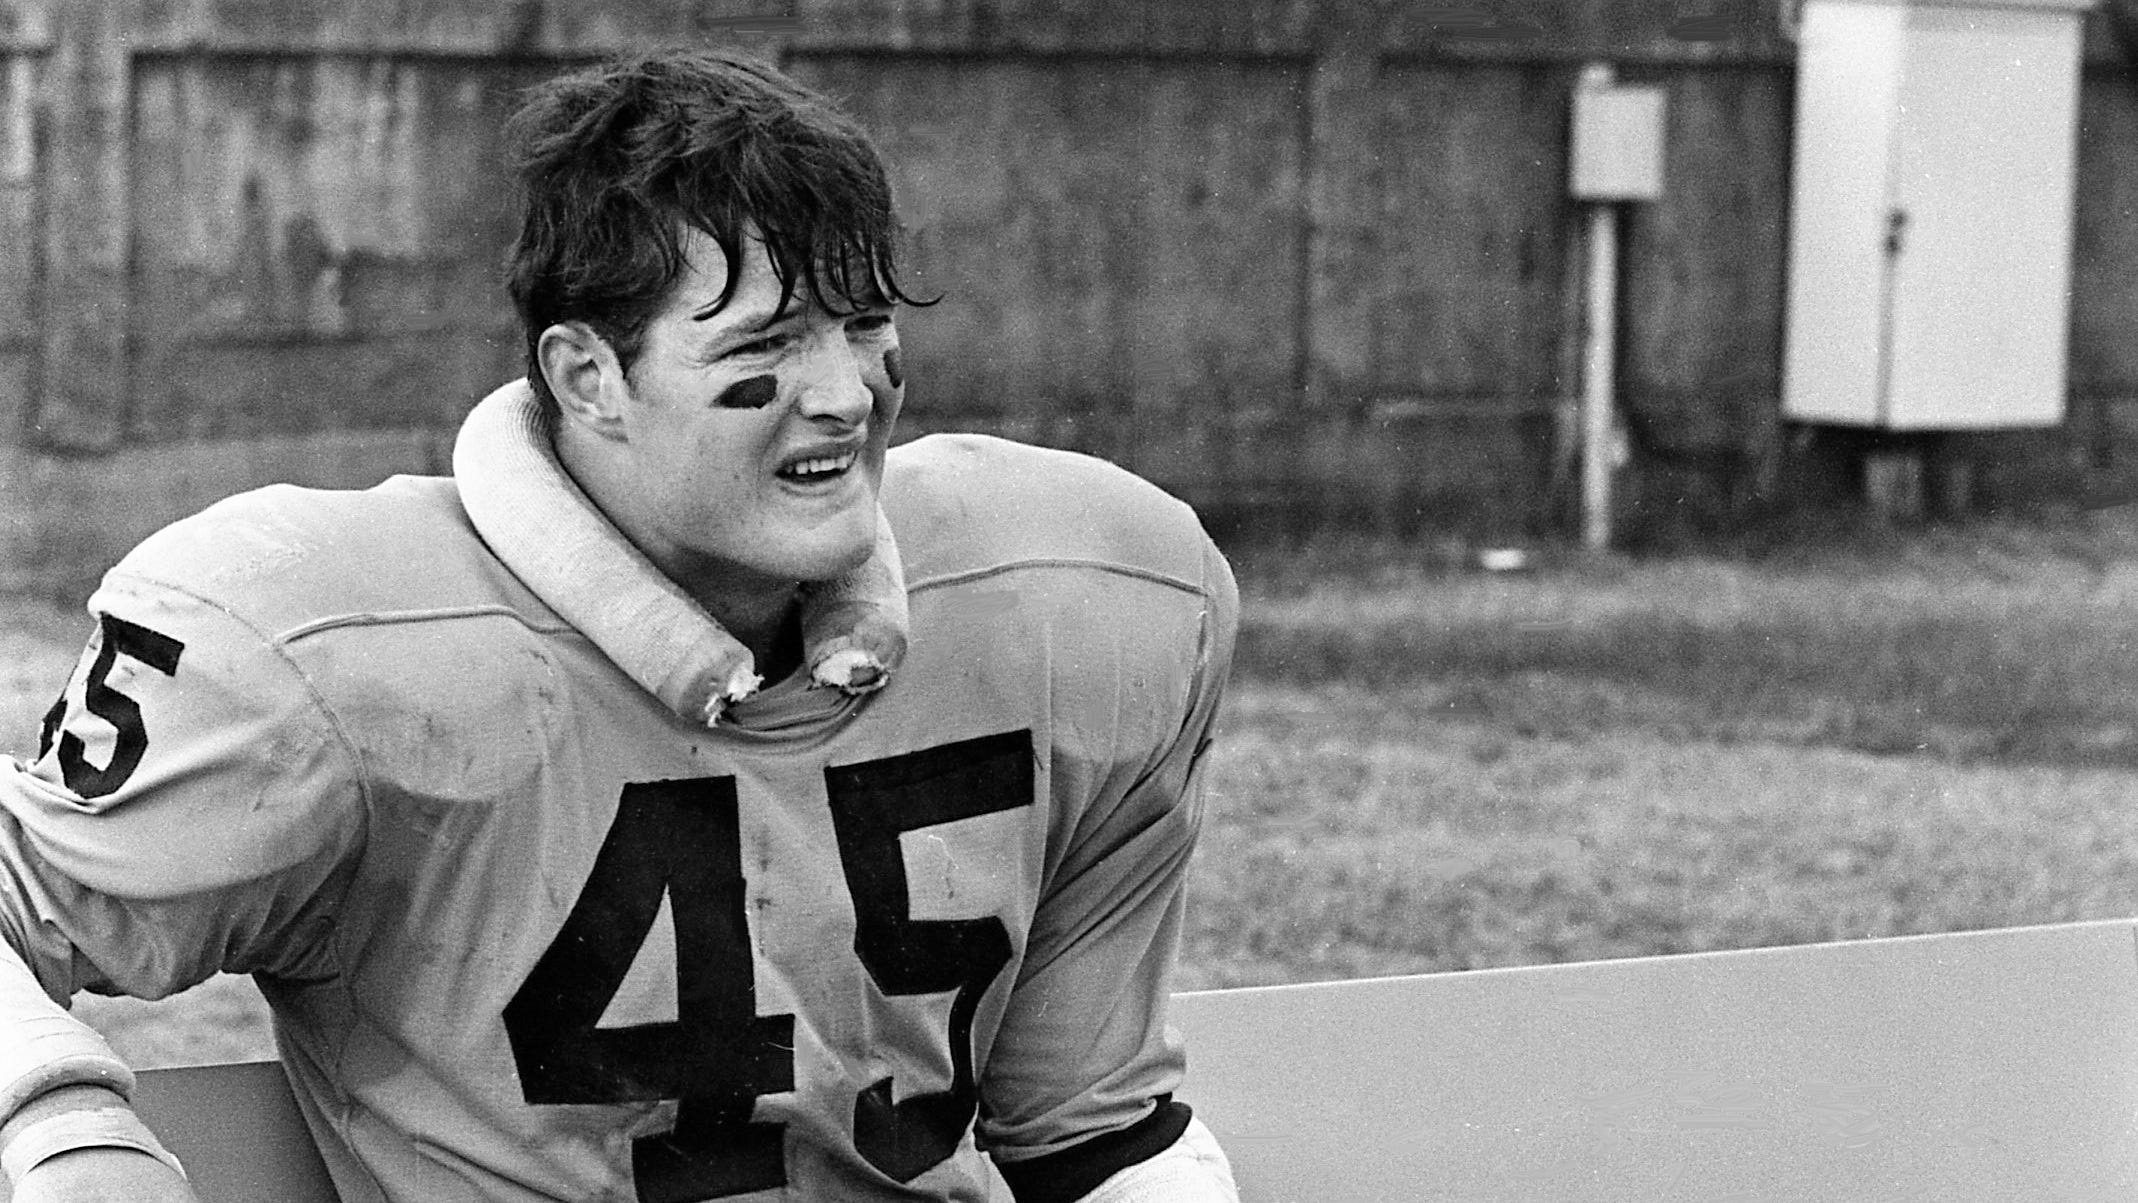 1960s Vanderbilt star called local paper to find out he was drafted. It took years before he found his real calling.